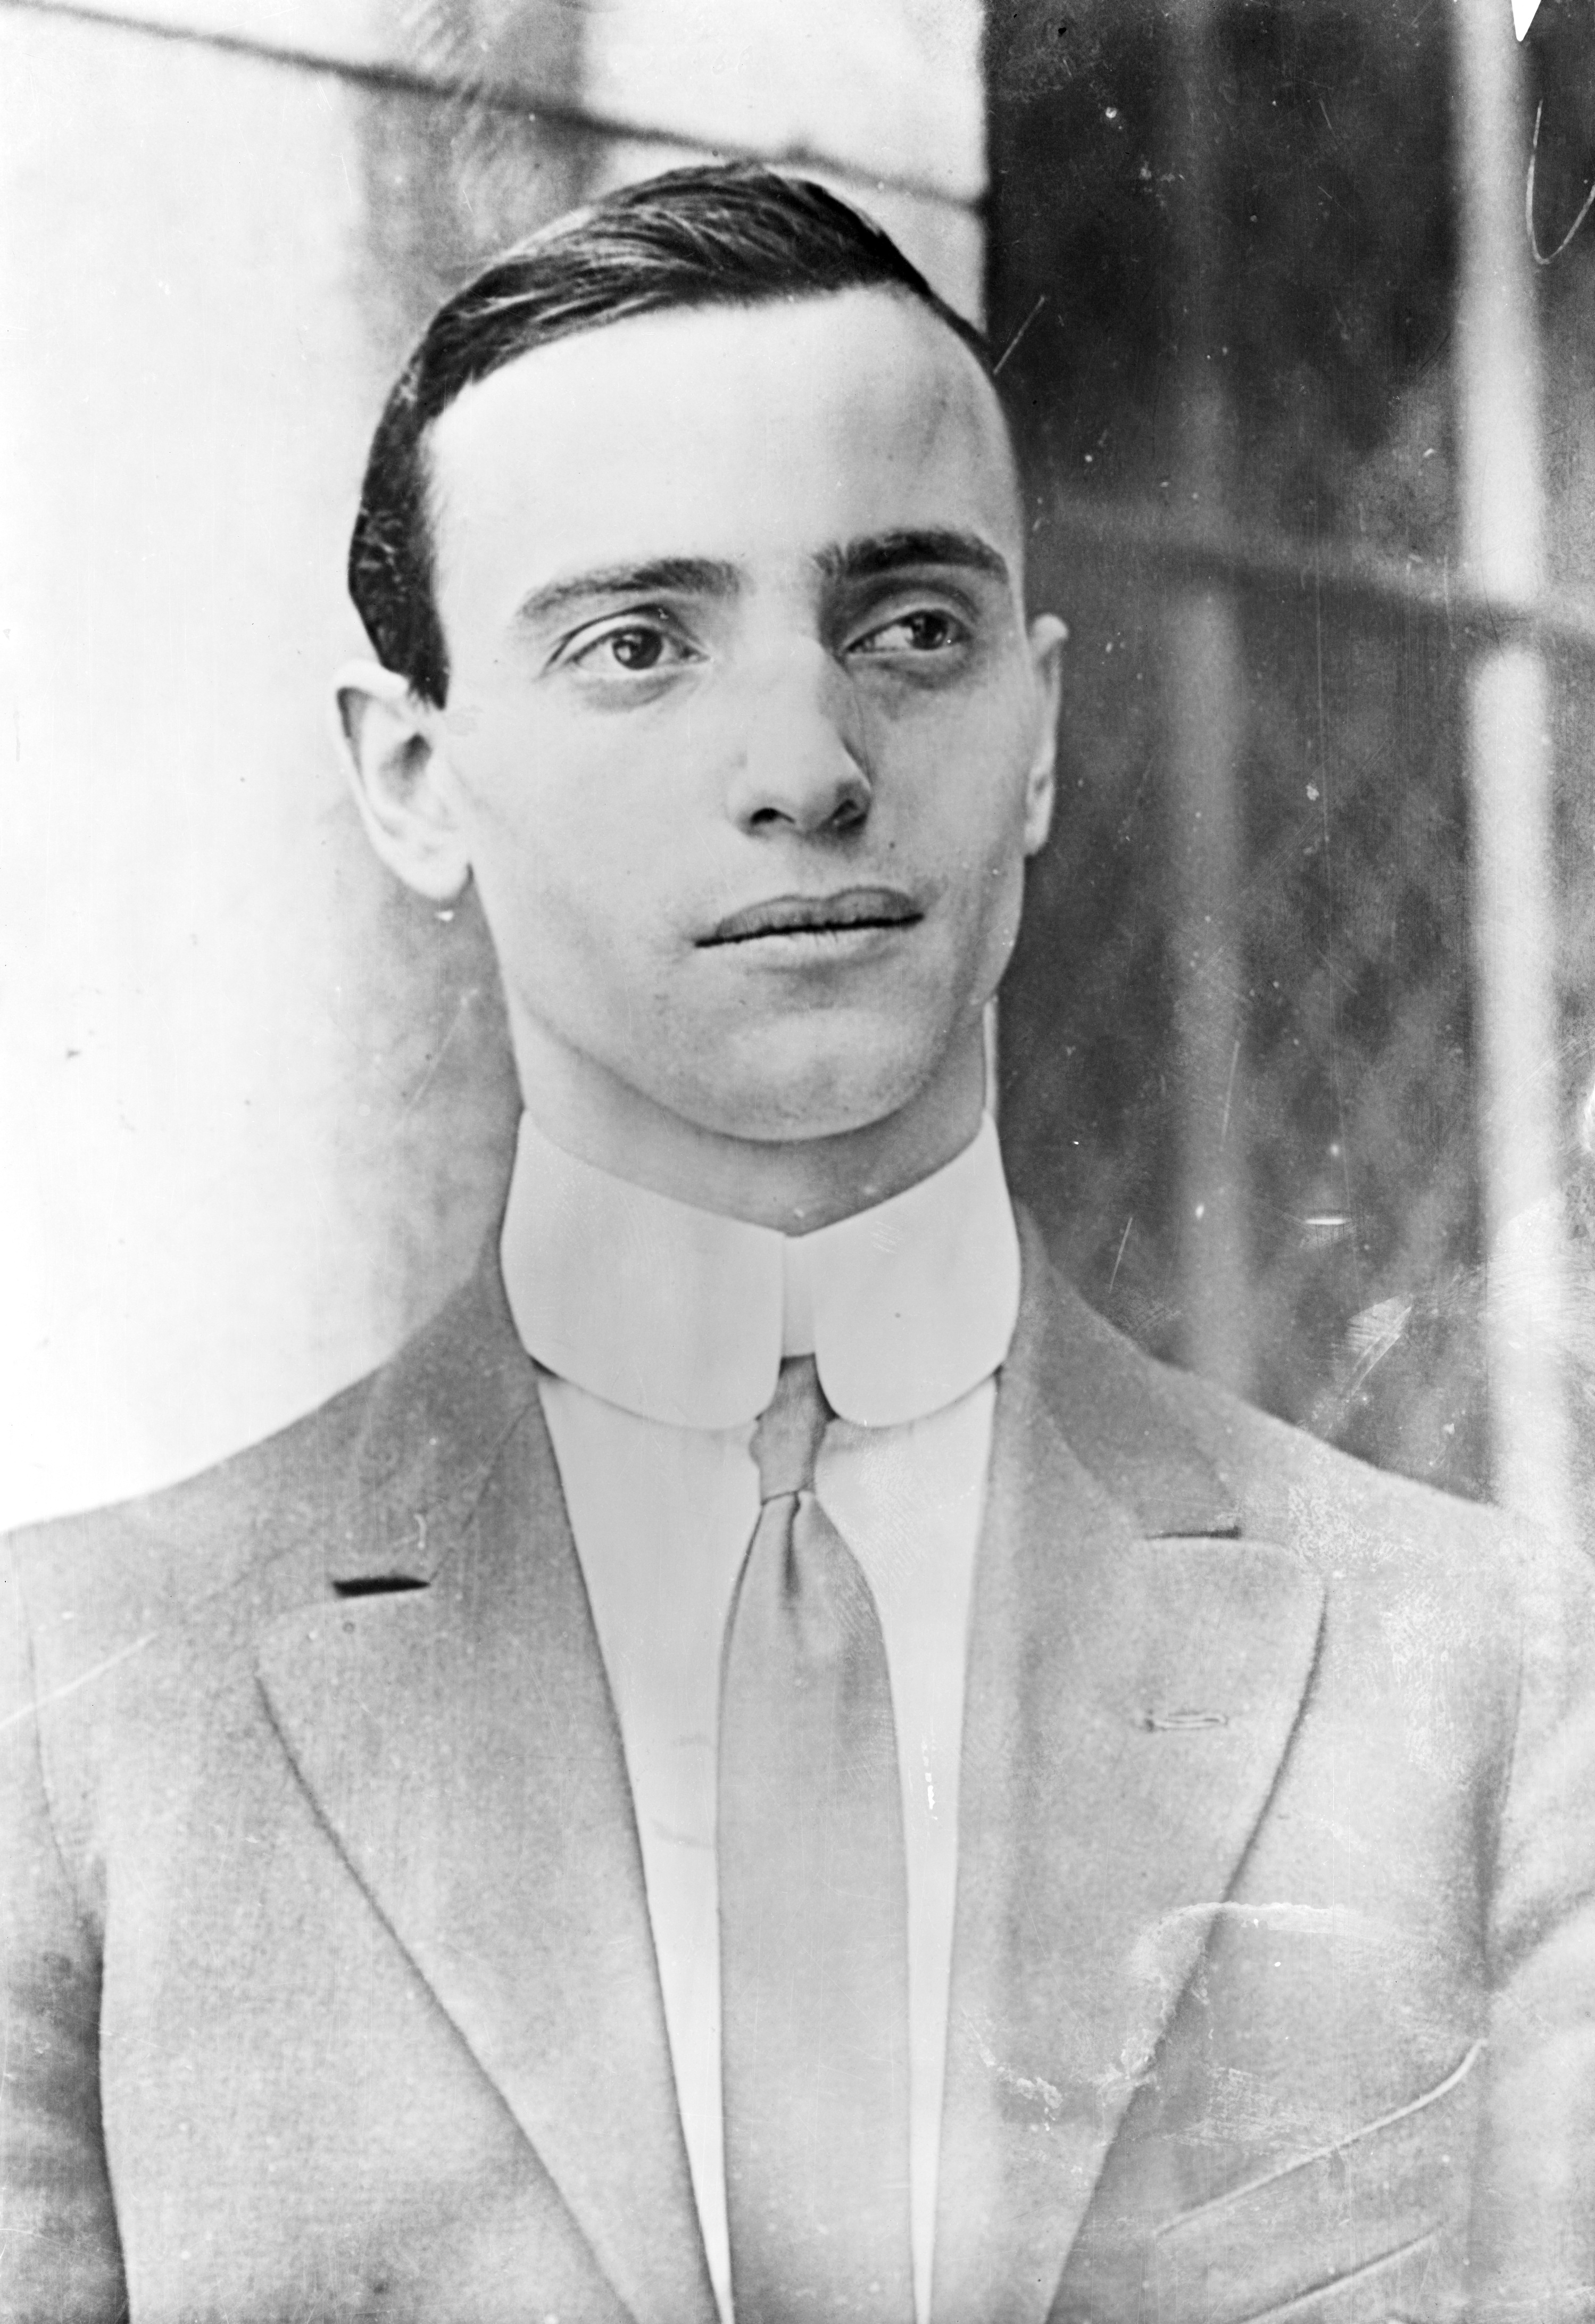 Leo Frank, who was lynched by a mob in 1915.